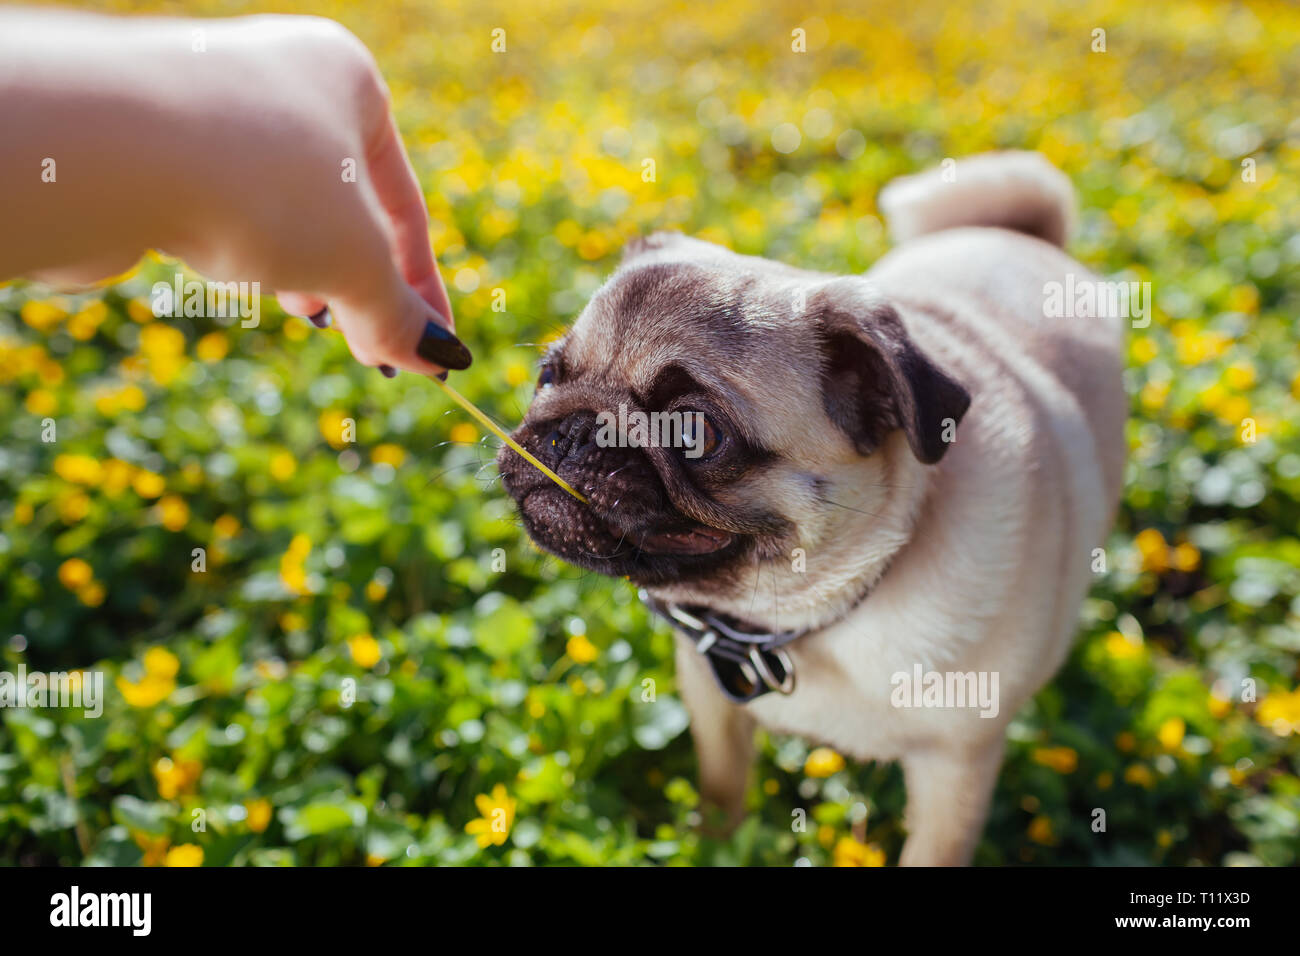 Woman playing with pug dog. Puppy caught flower. Dog walks in forest among yellow flowers. Happy pug dog - Stock Image